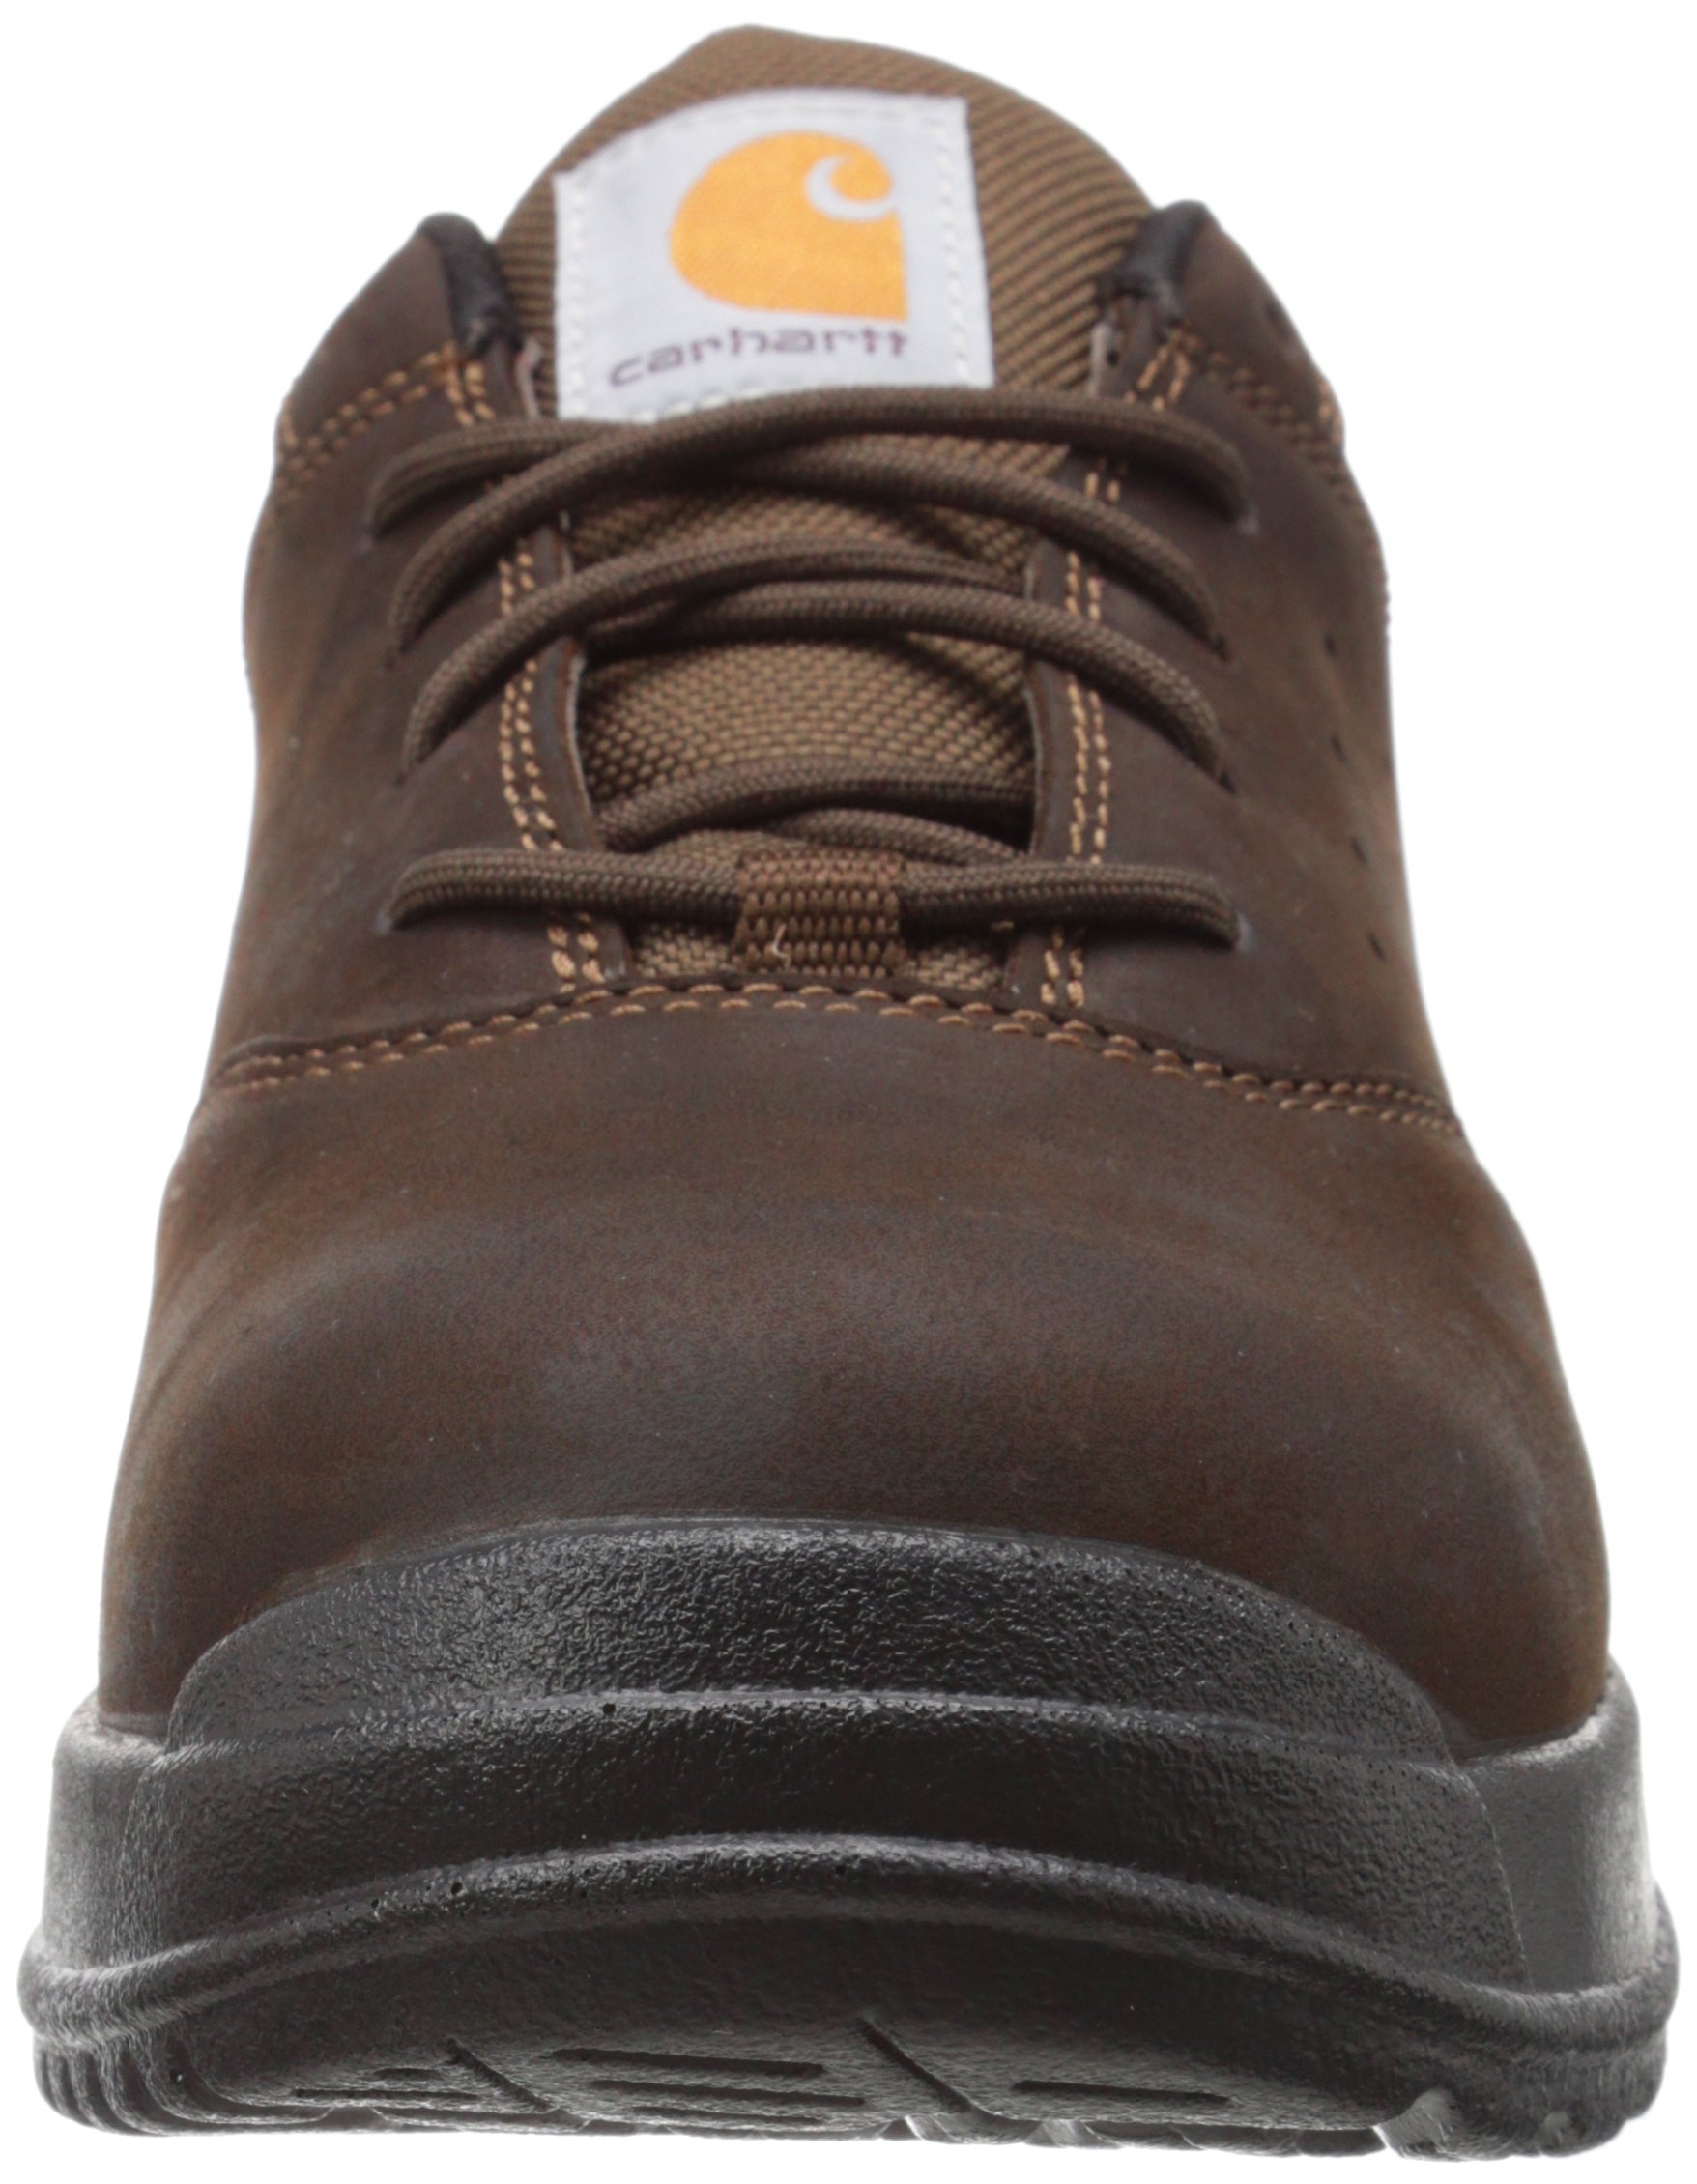 Carhartt Men's CMO3040 Walking Oxford,Dark Brown, 13 M US by Carhartt (Image #4)